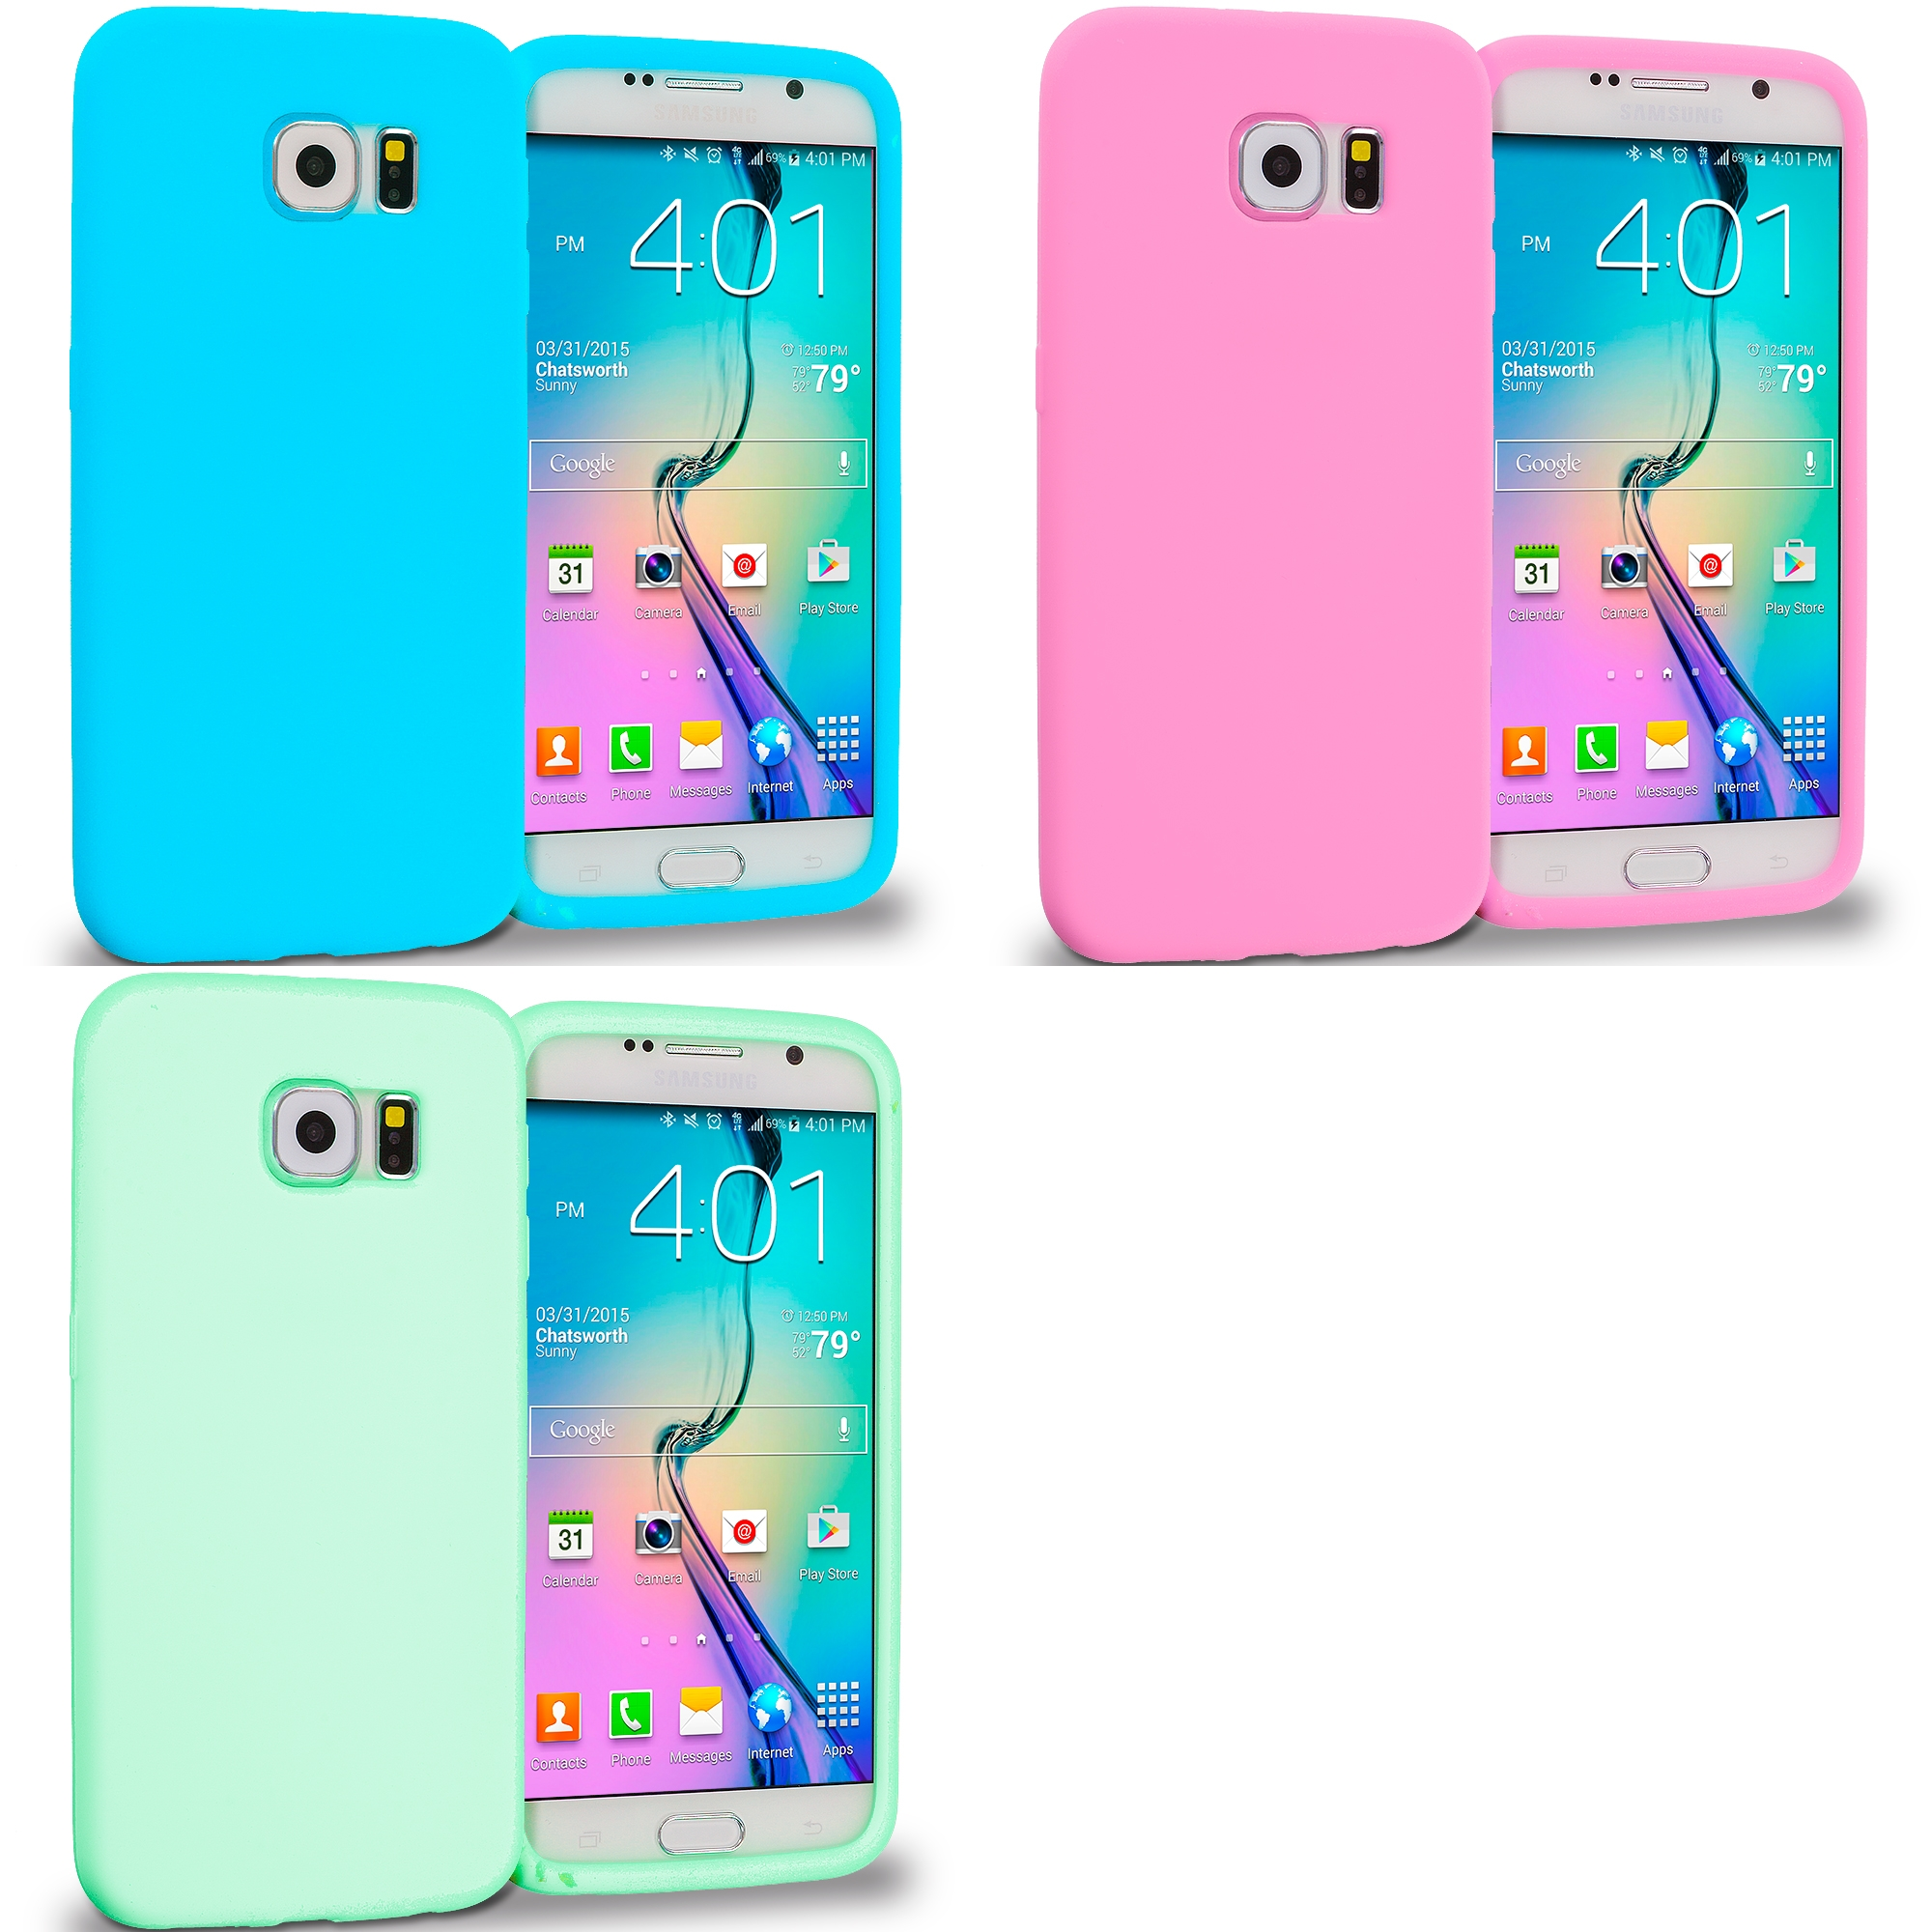 Samsung Galaxy S6 Combo Pack : Baby Blue Silicone Soft Skin Rubber Case Cover